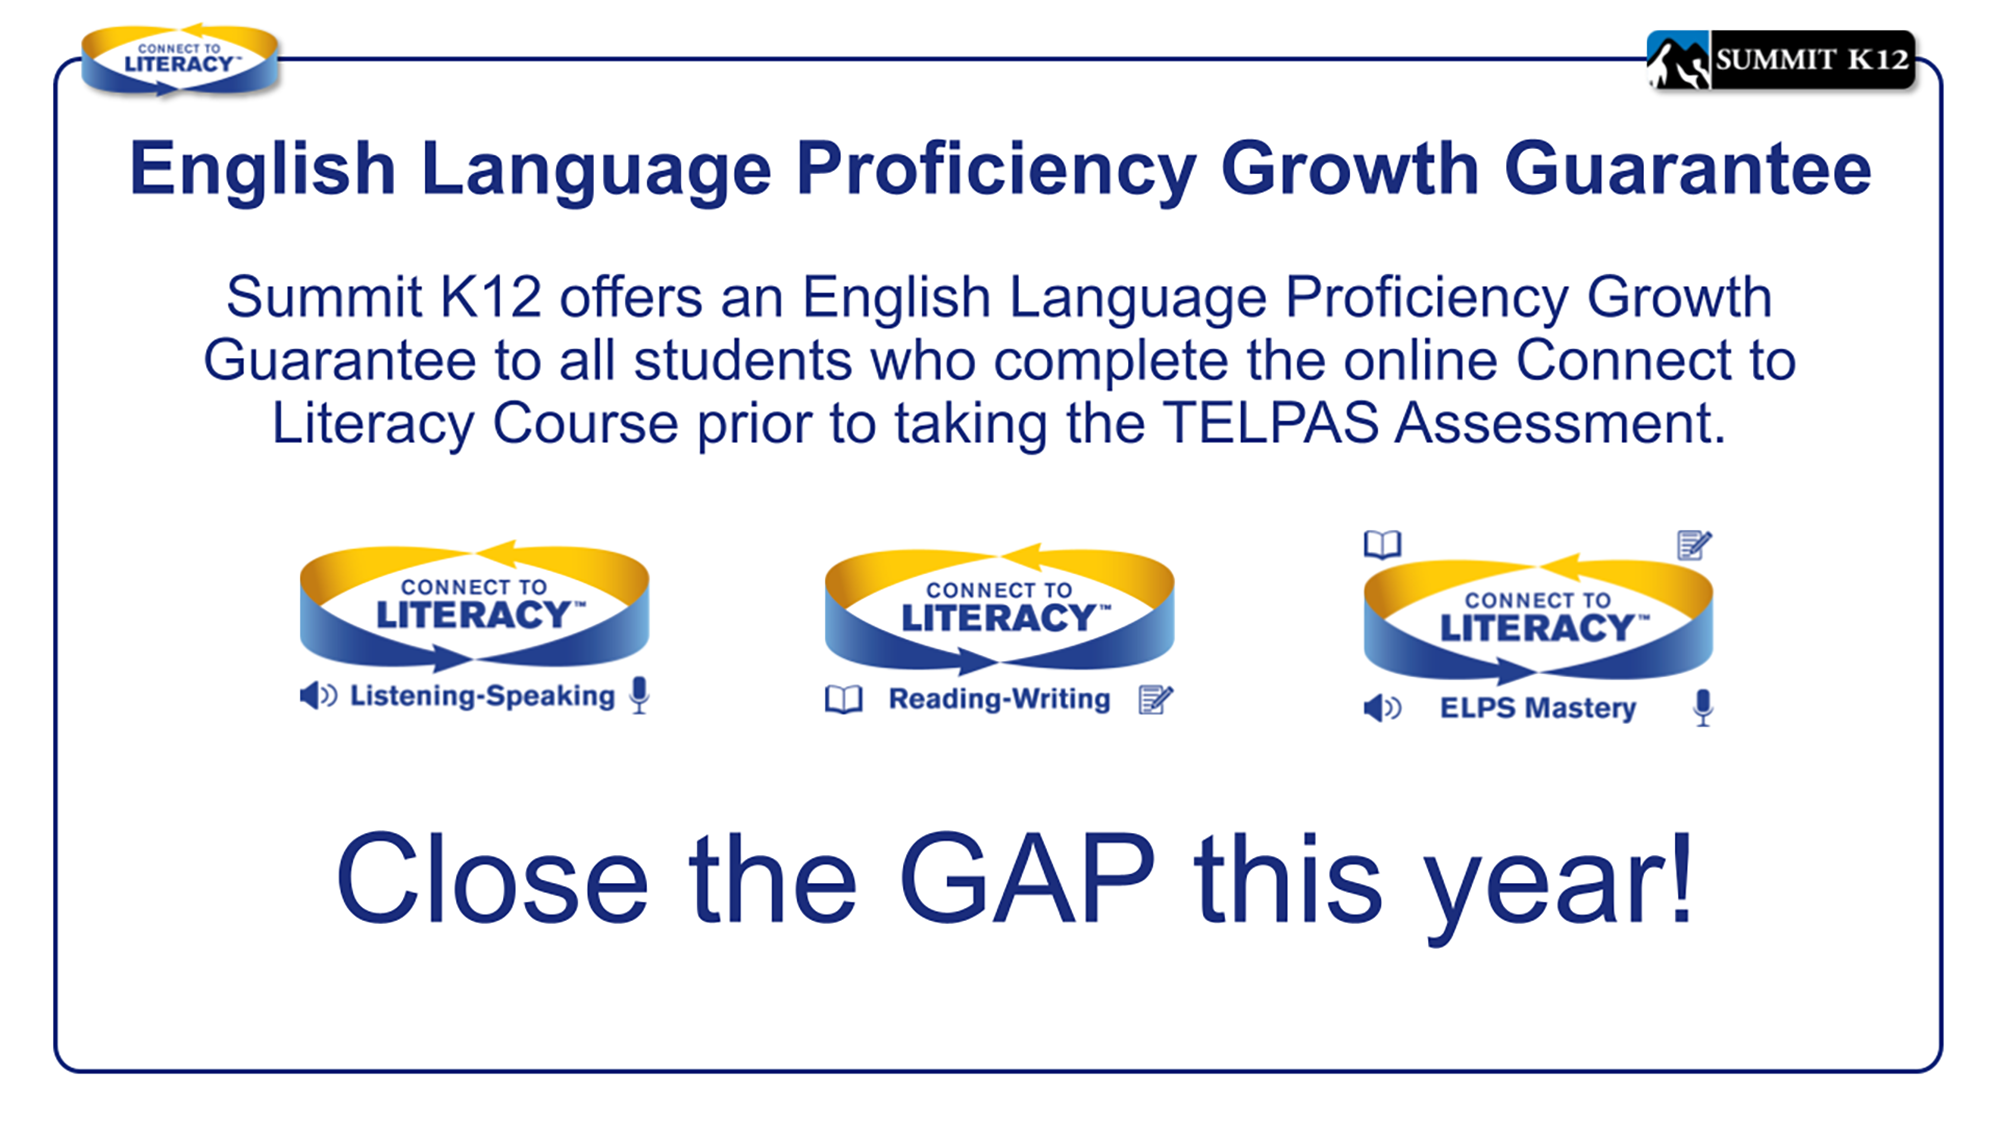 English Language Proficiency Growth Guarantee